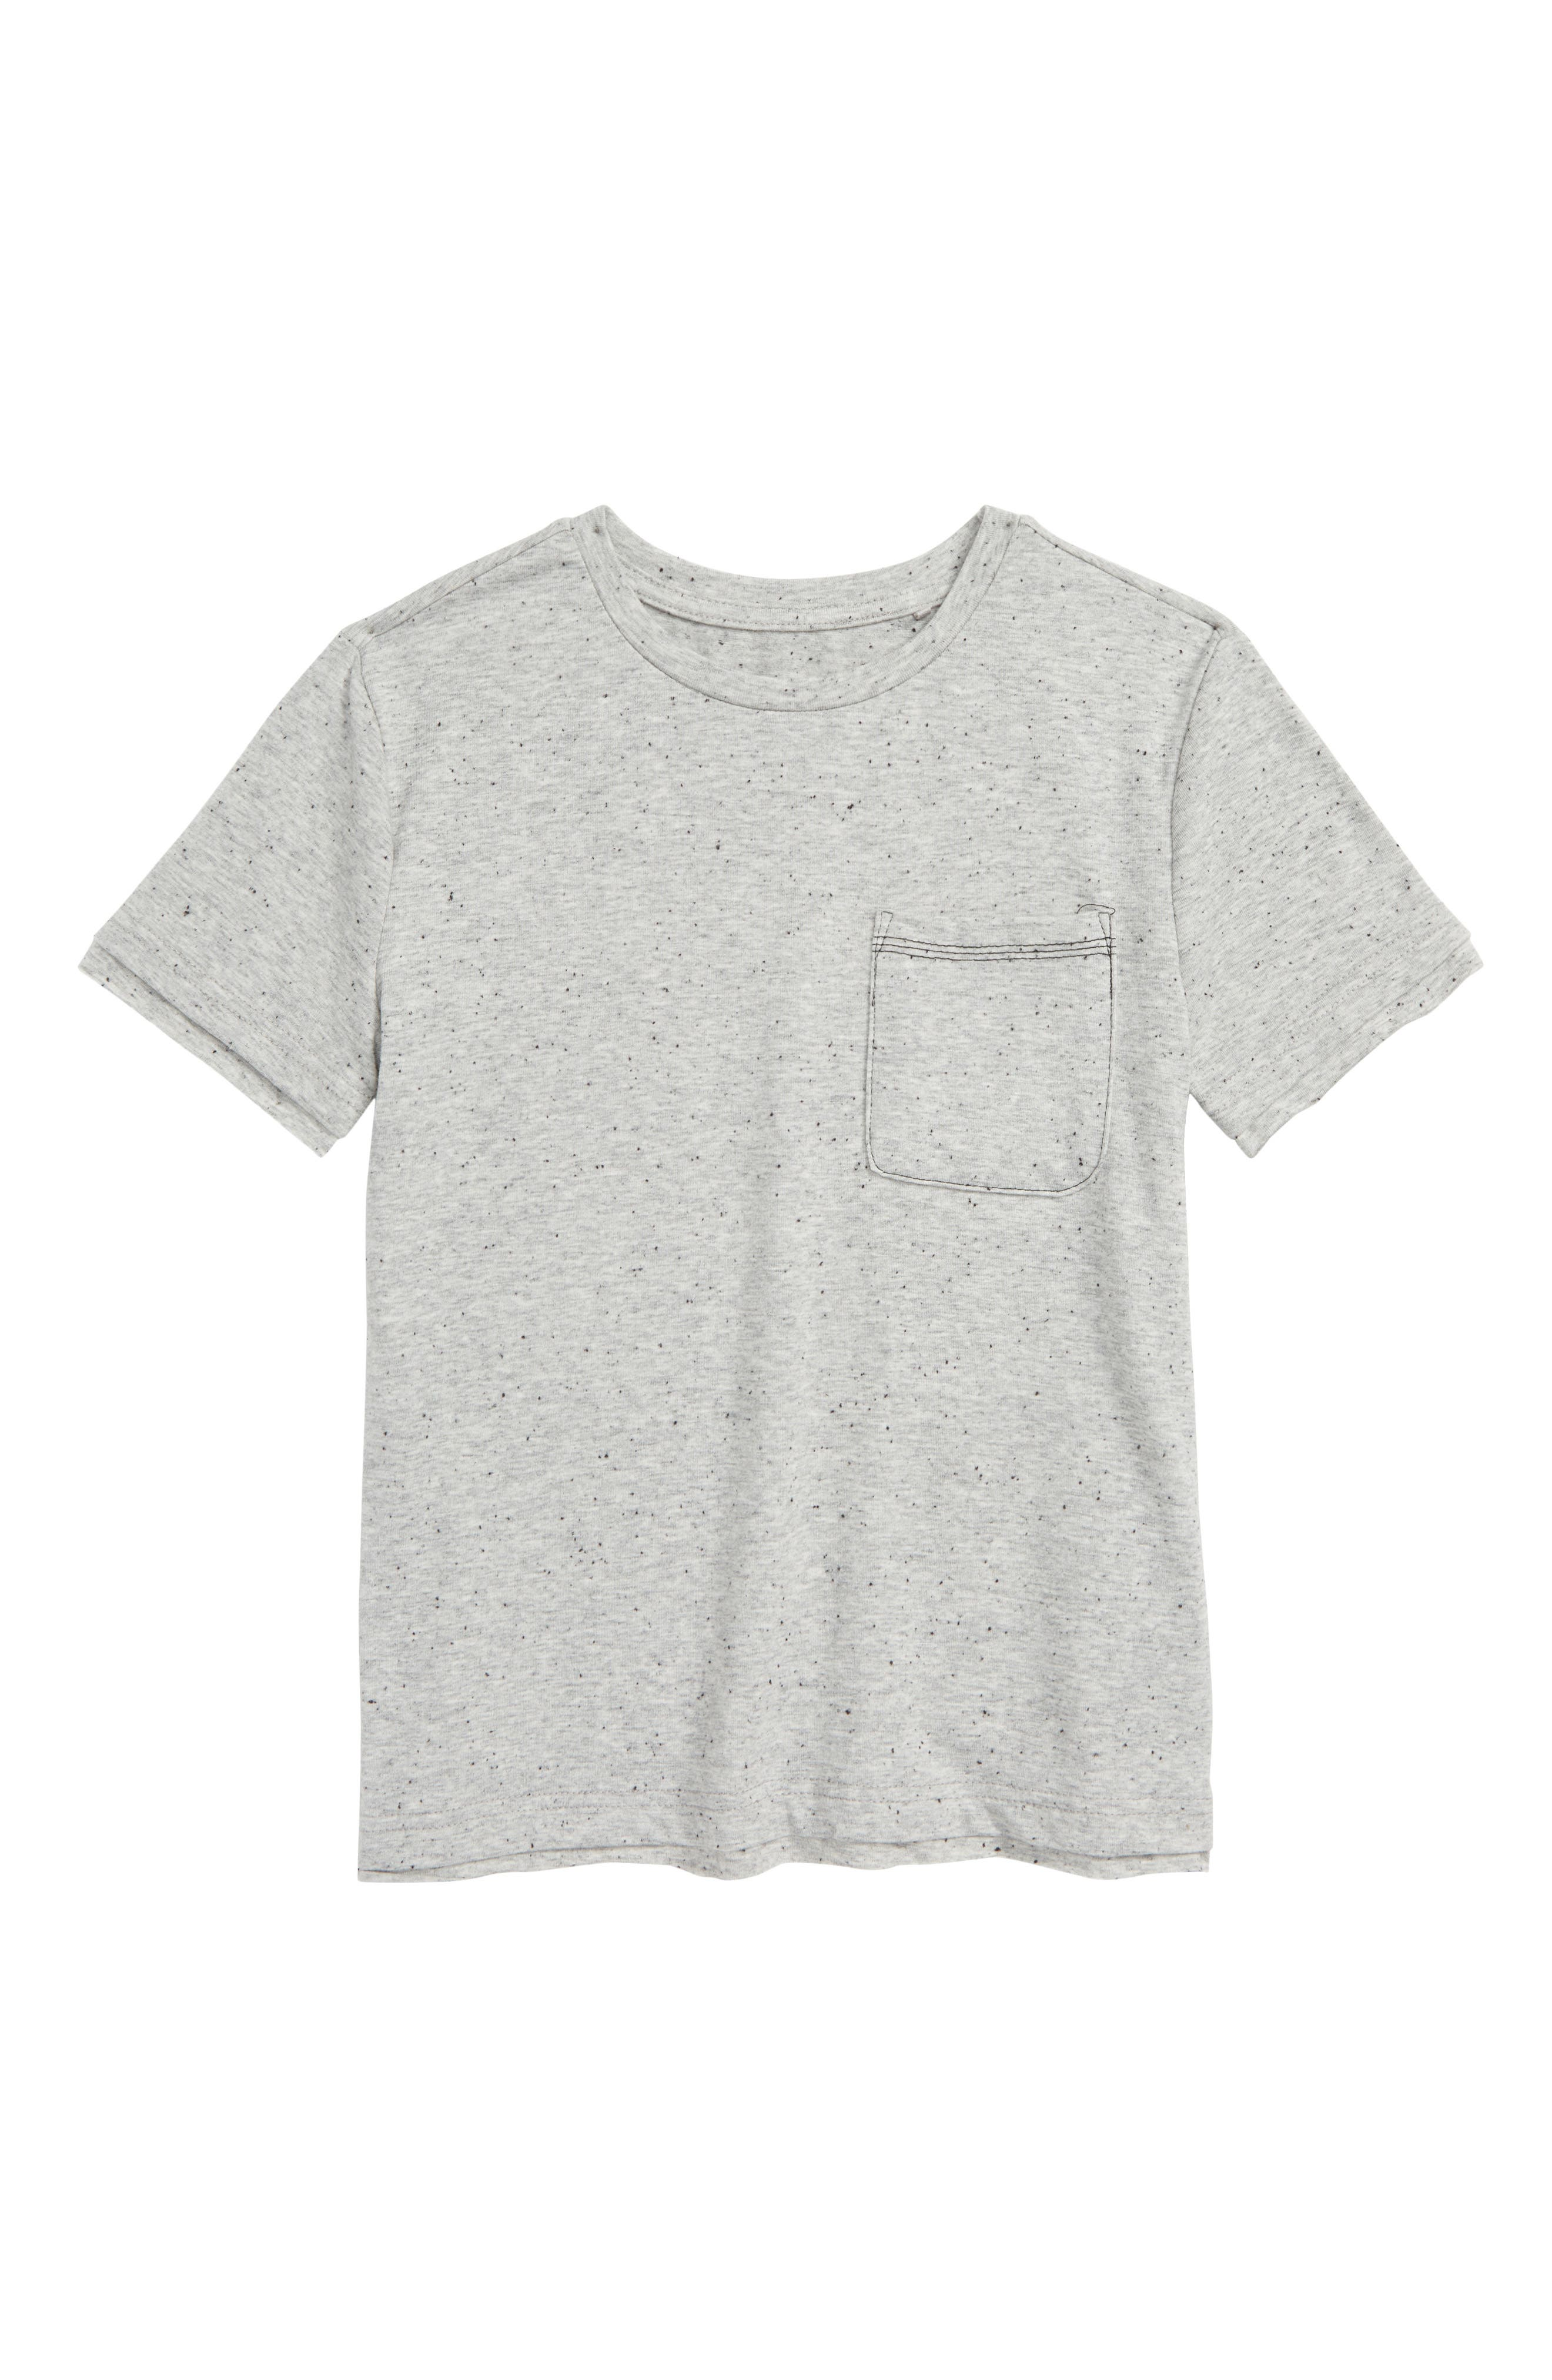 Pocket T-Shirt,                         Main,                         color, 021